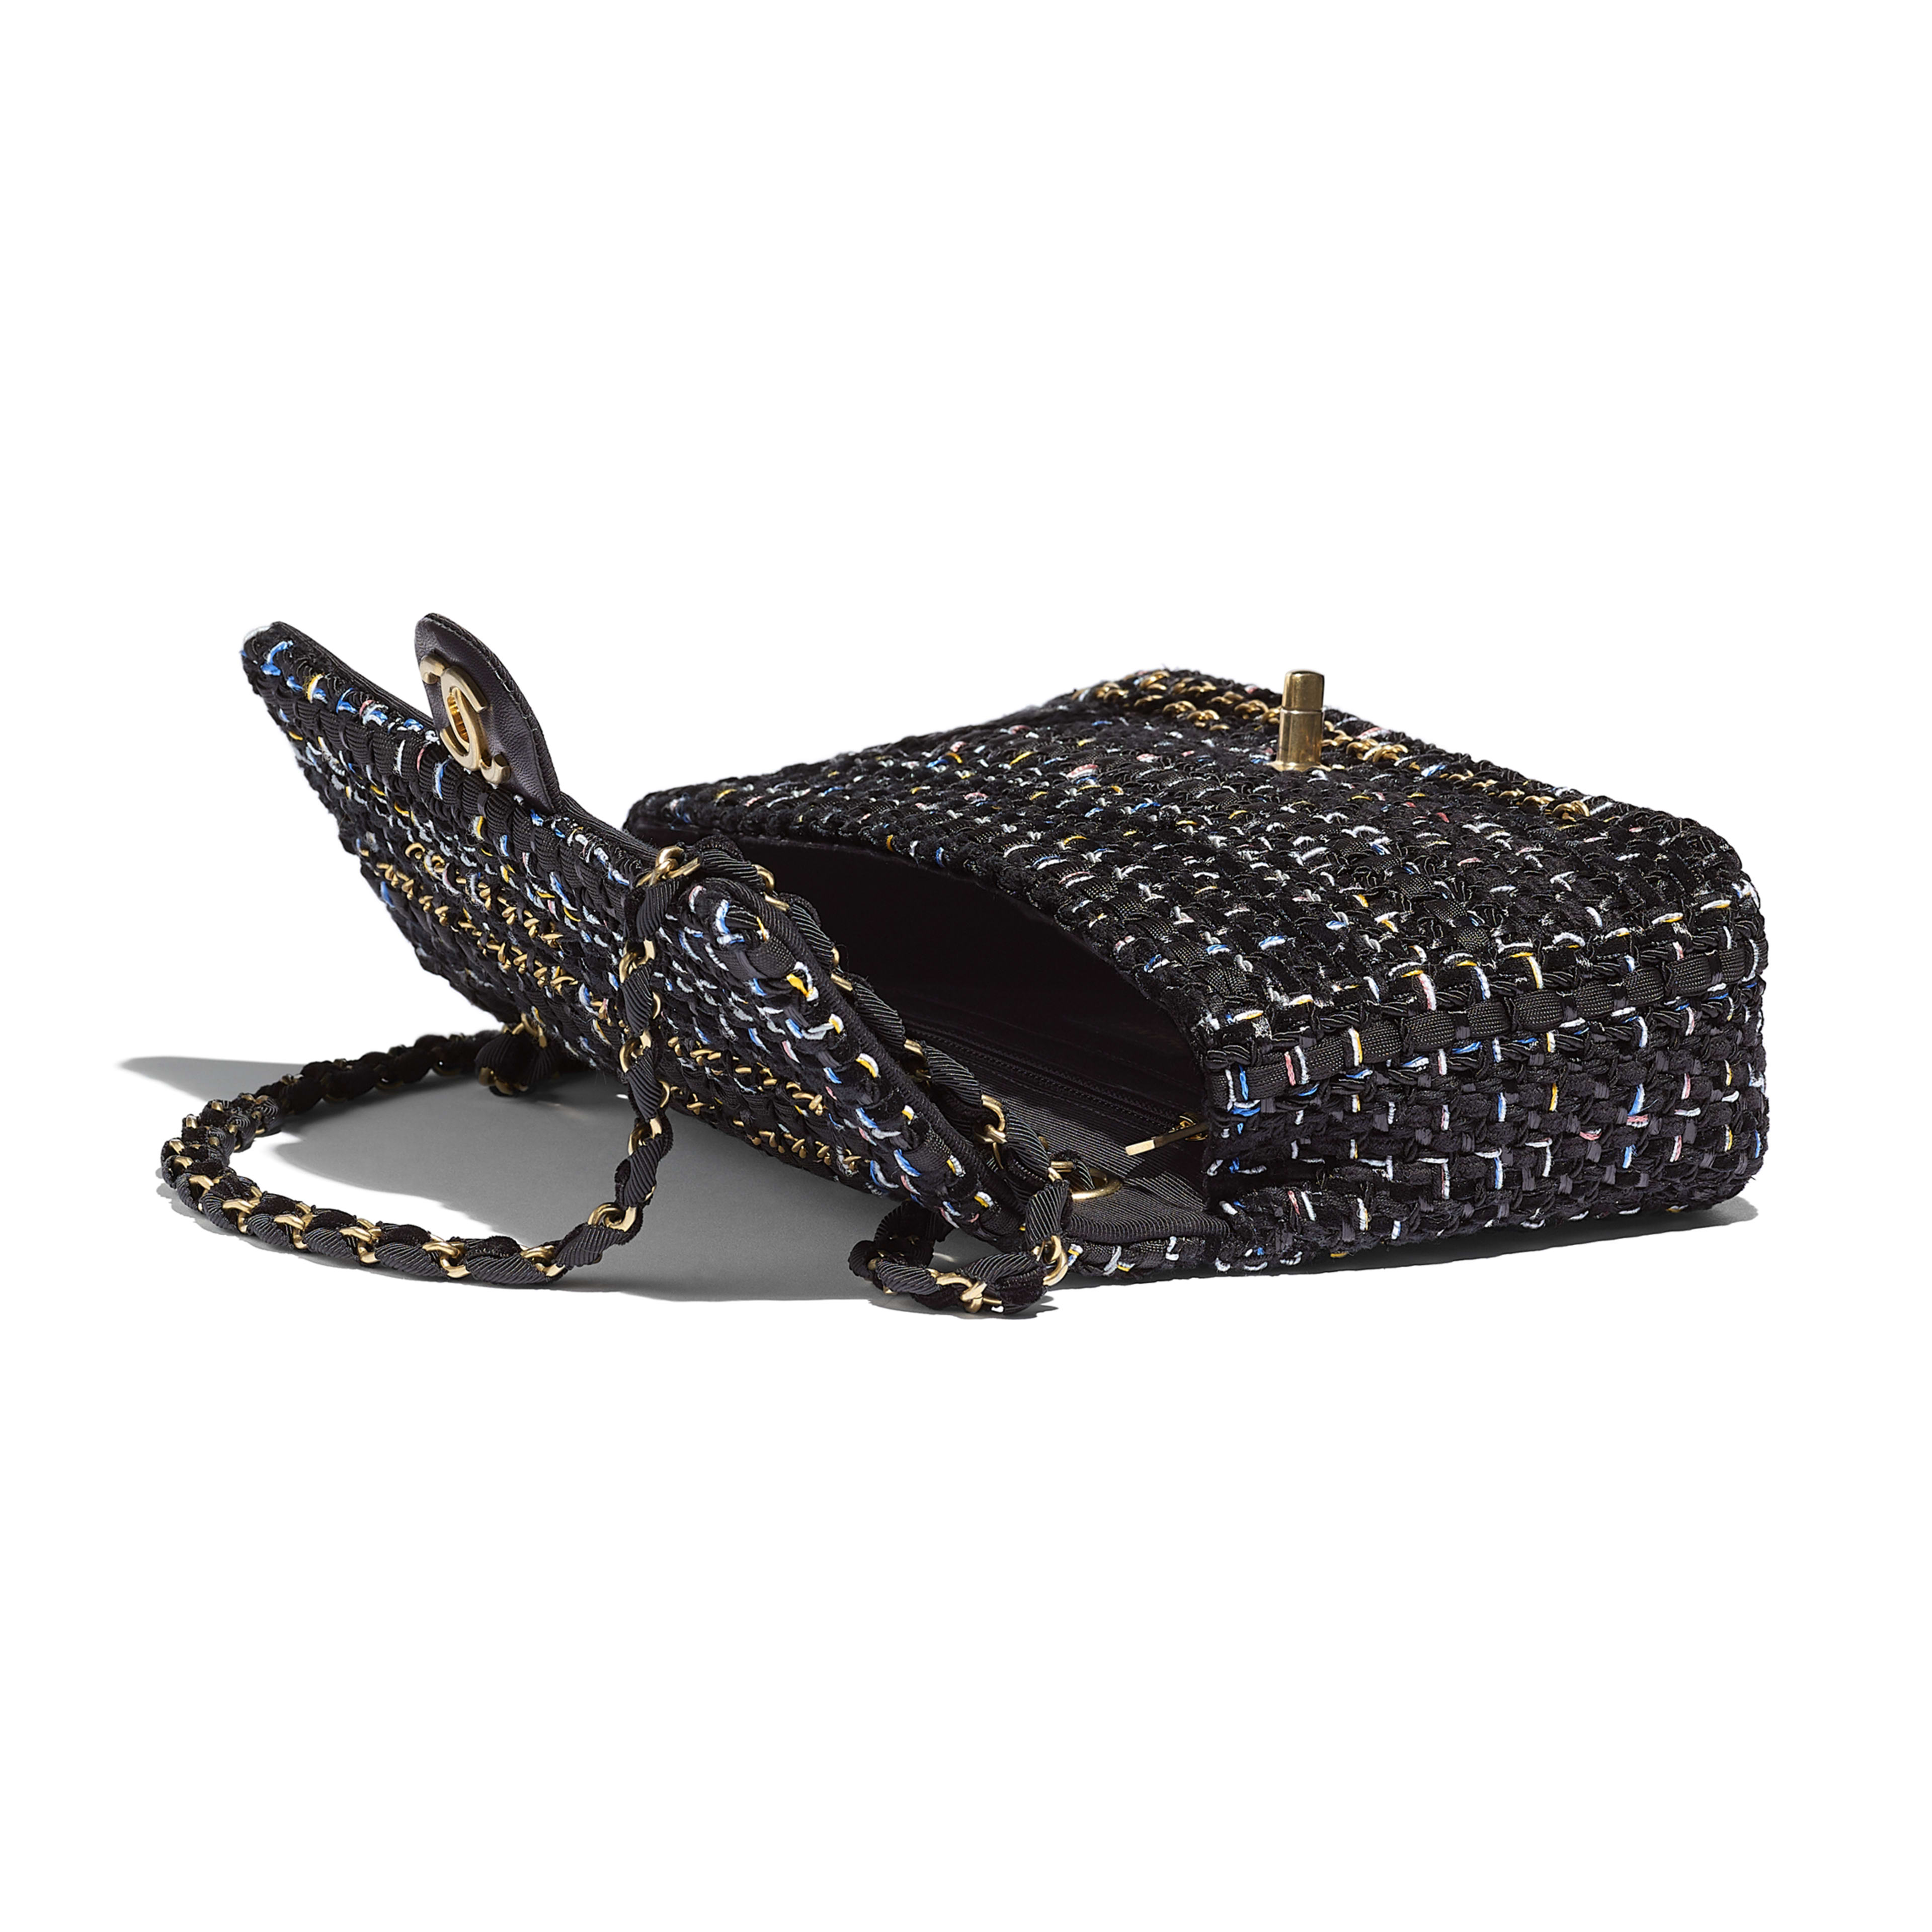 Flap Bag - Black - Tweed & Gold Metal - Other view - see full sized version